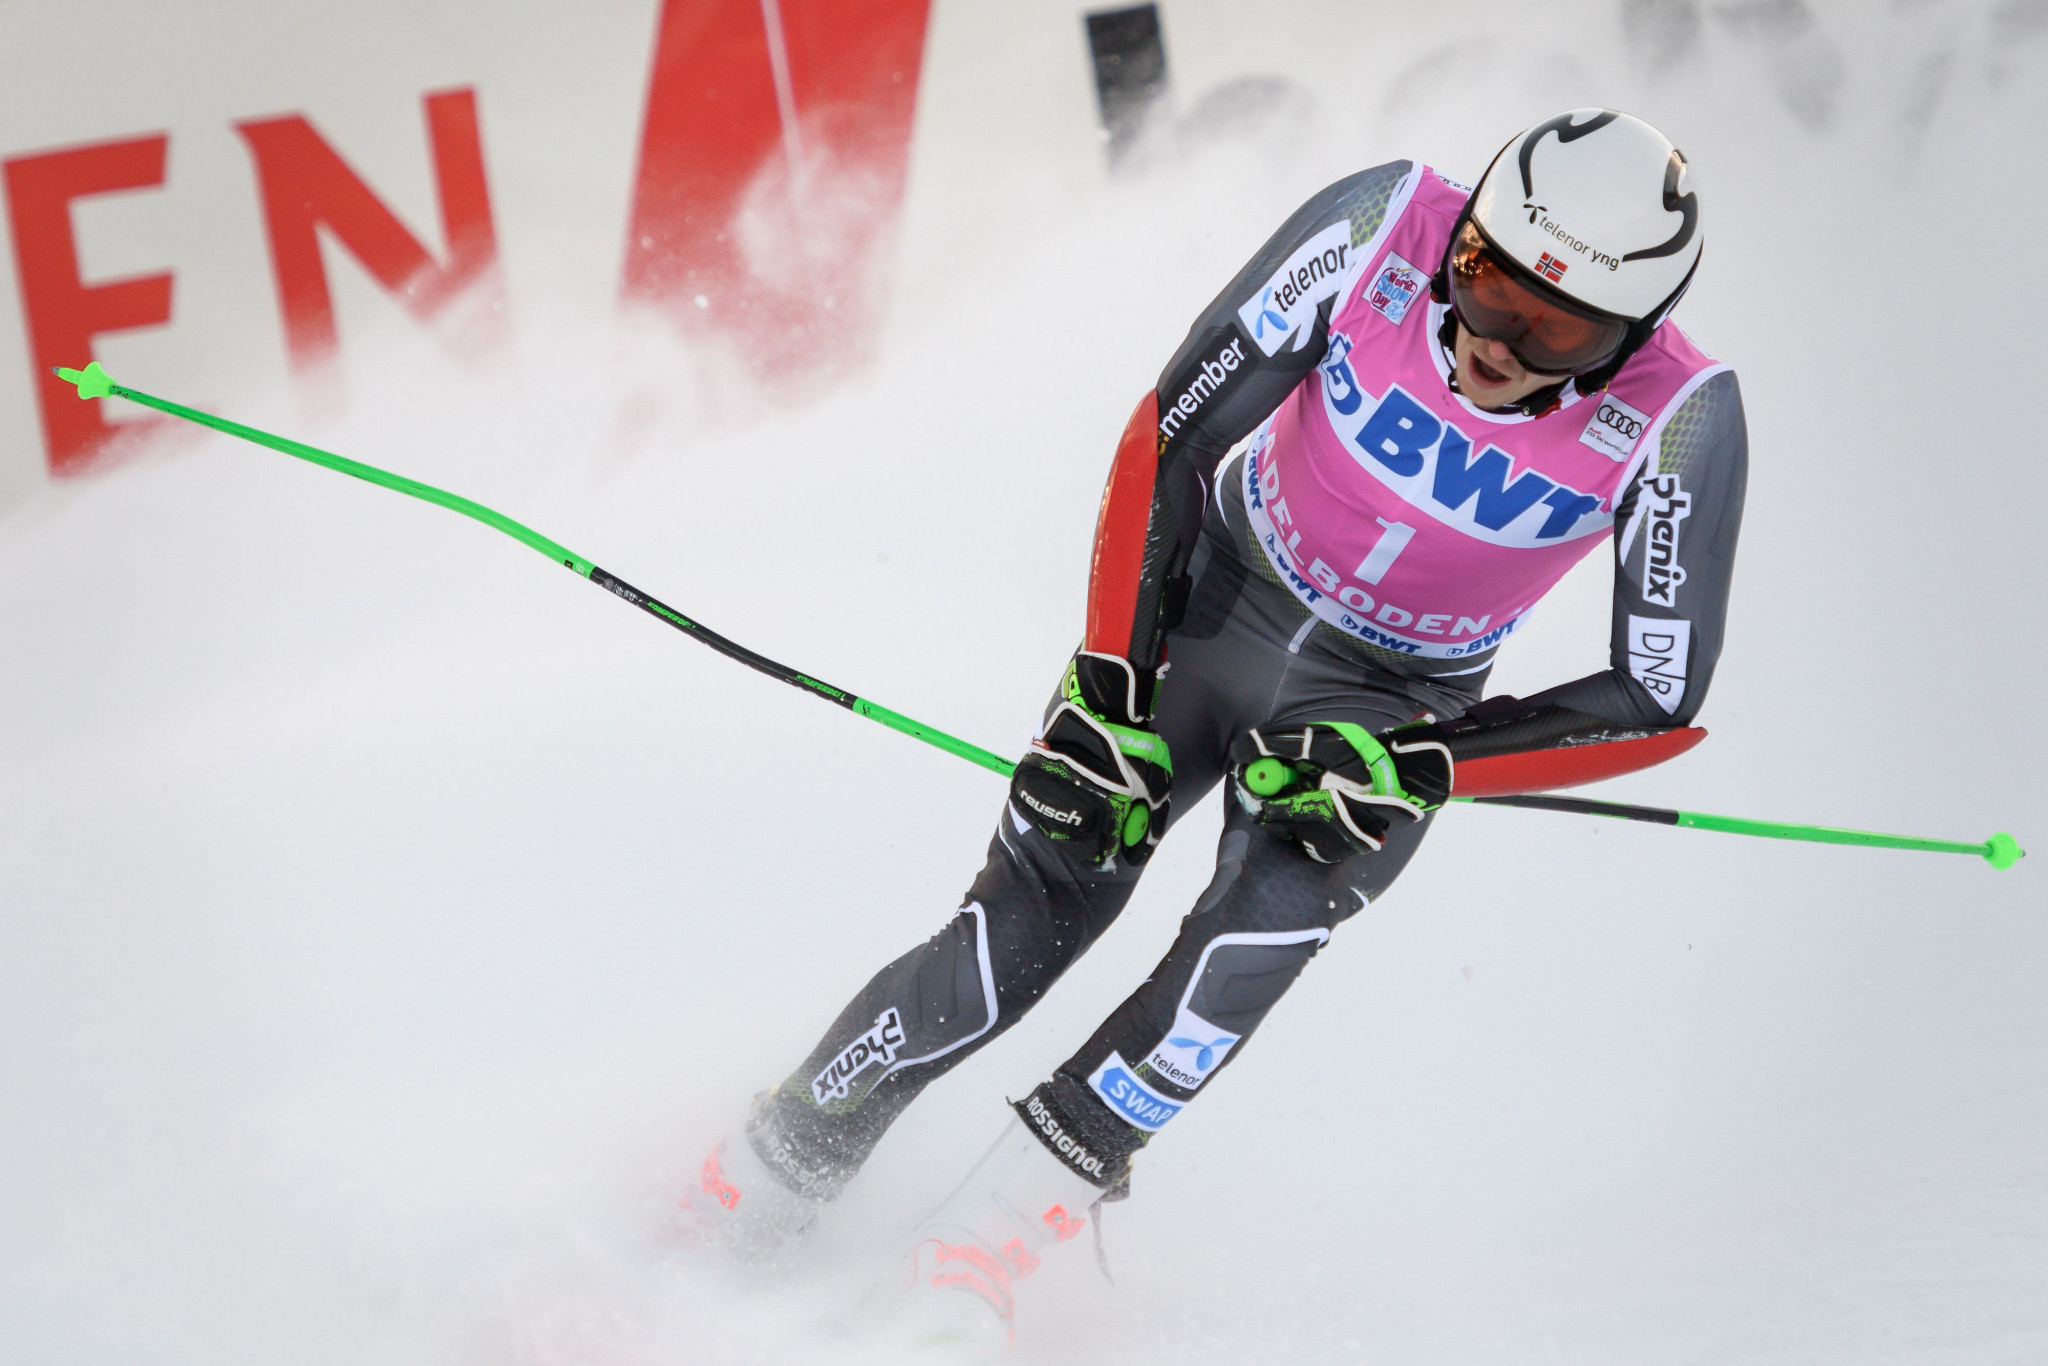 Norway's Henrik Kristoffersen led after the first run but ended second overall ©Getty Images